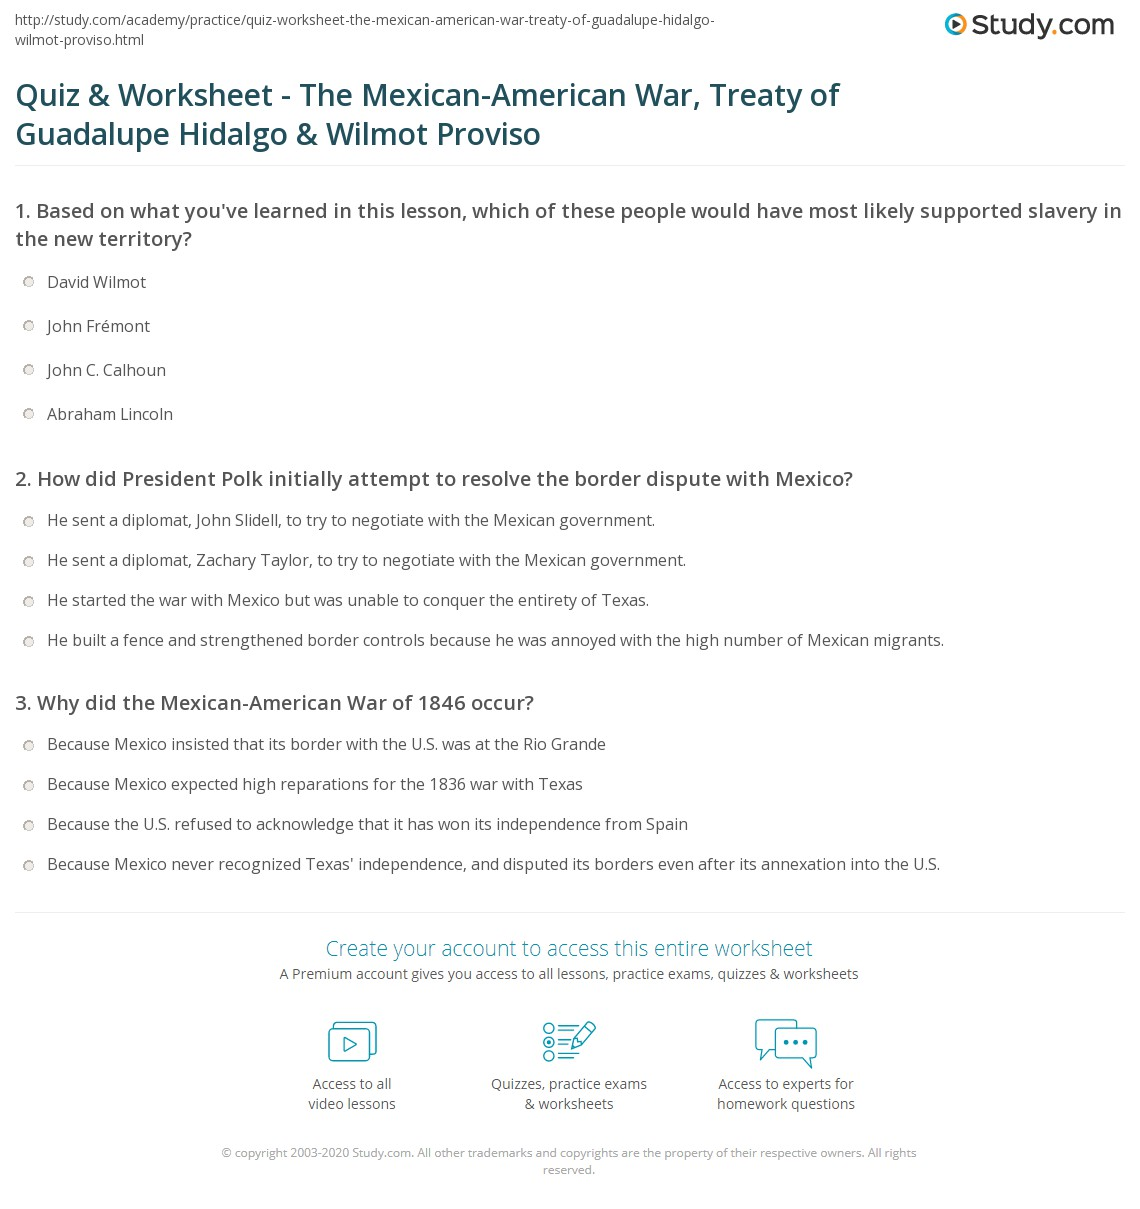 an analysis of the mexican american war Review baker apush change and continuity wars in american against mexico over unpaid claims, american blood on ended the mexican-american war.